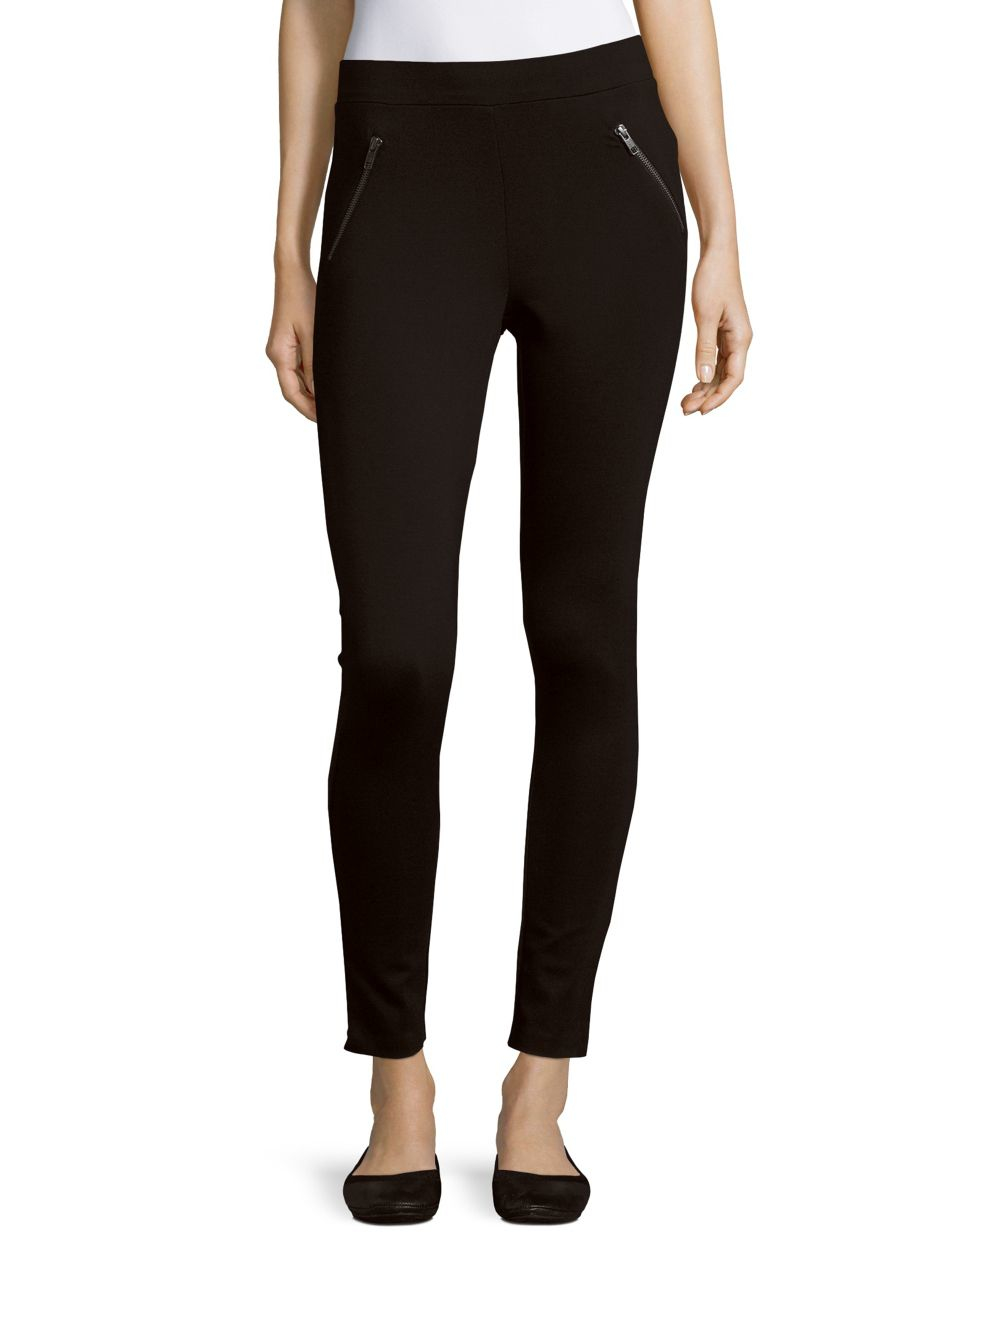 Perfect While Guys Seem To Have Plenty Of Options, If Youre Looking For The Best Hiking Pants For Women It Can Be A Little Harder To Find  Pants With Vertical Ankle Zippers Make It A Lot Easier And Will Save You Having To Take Your Shoes Off Each Time